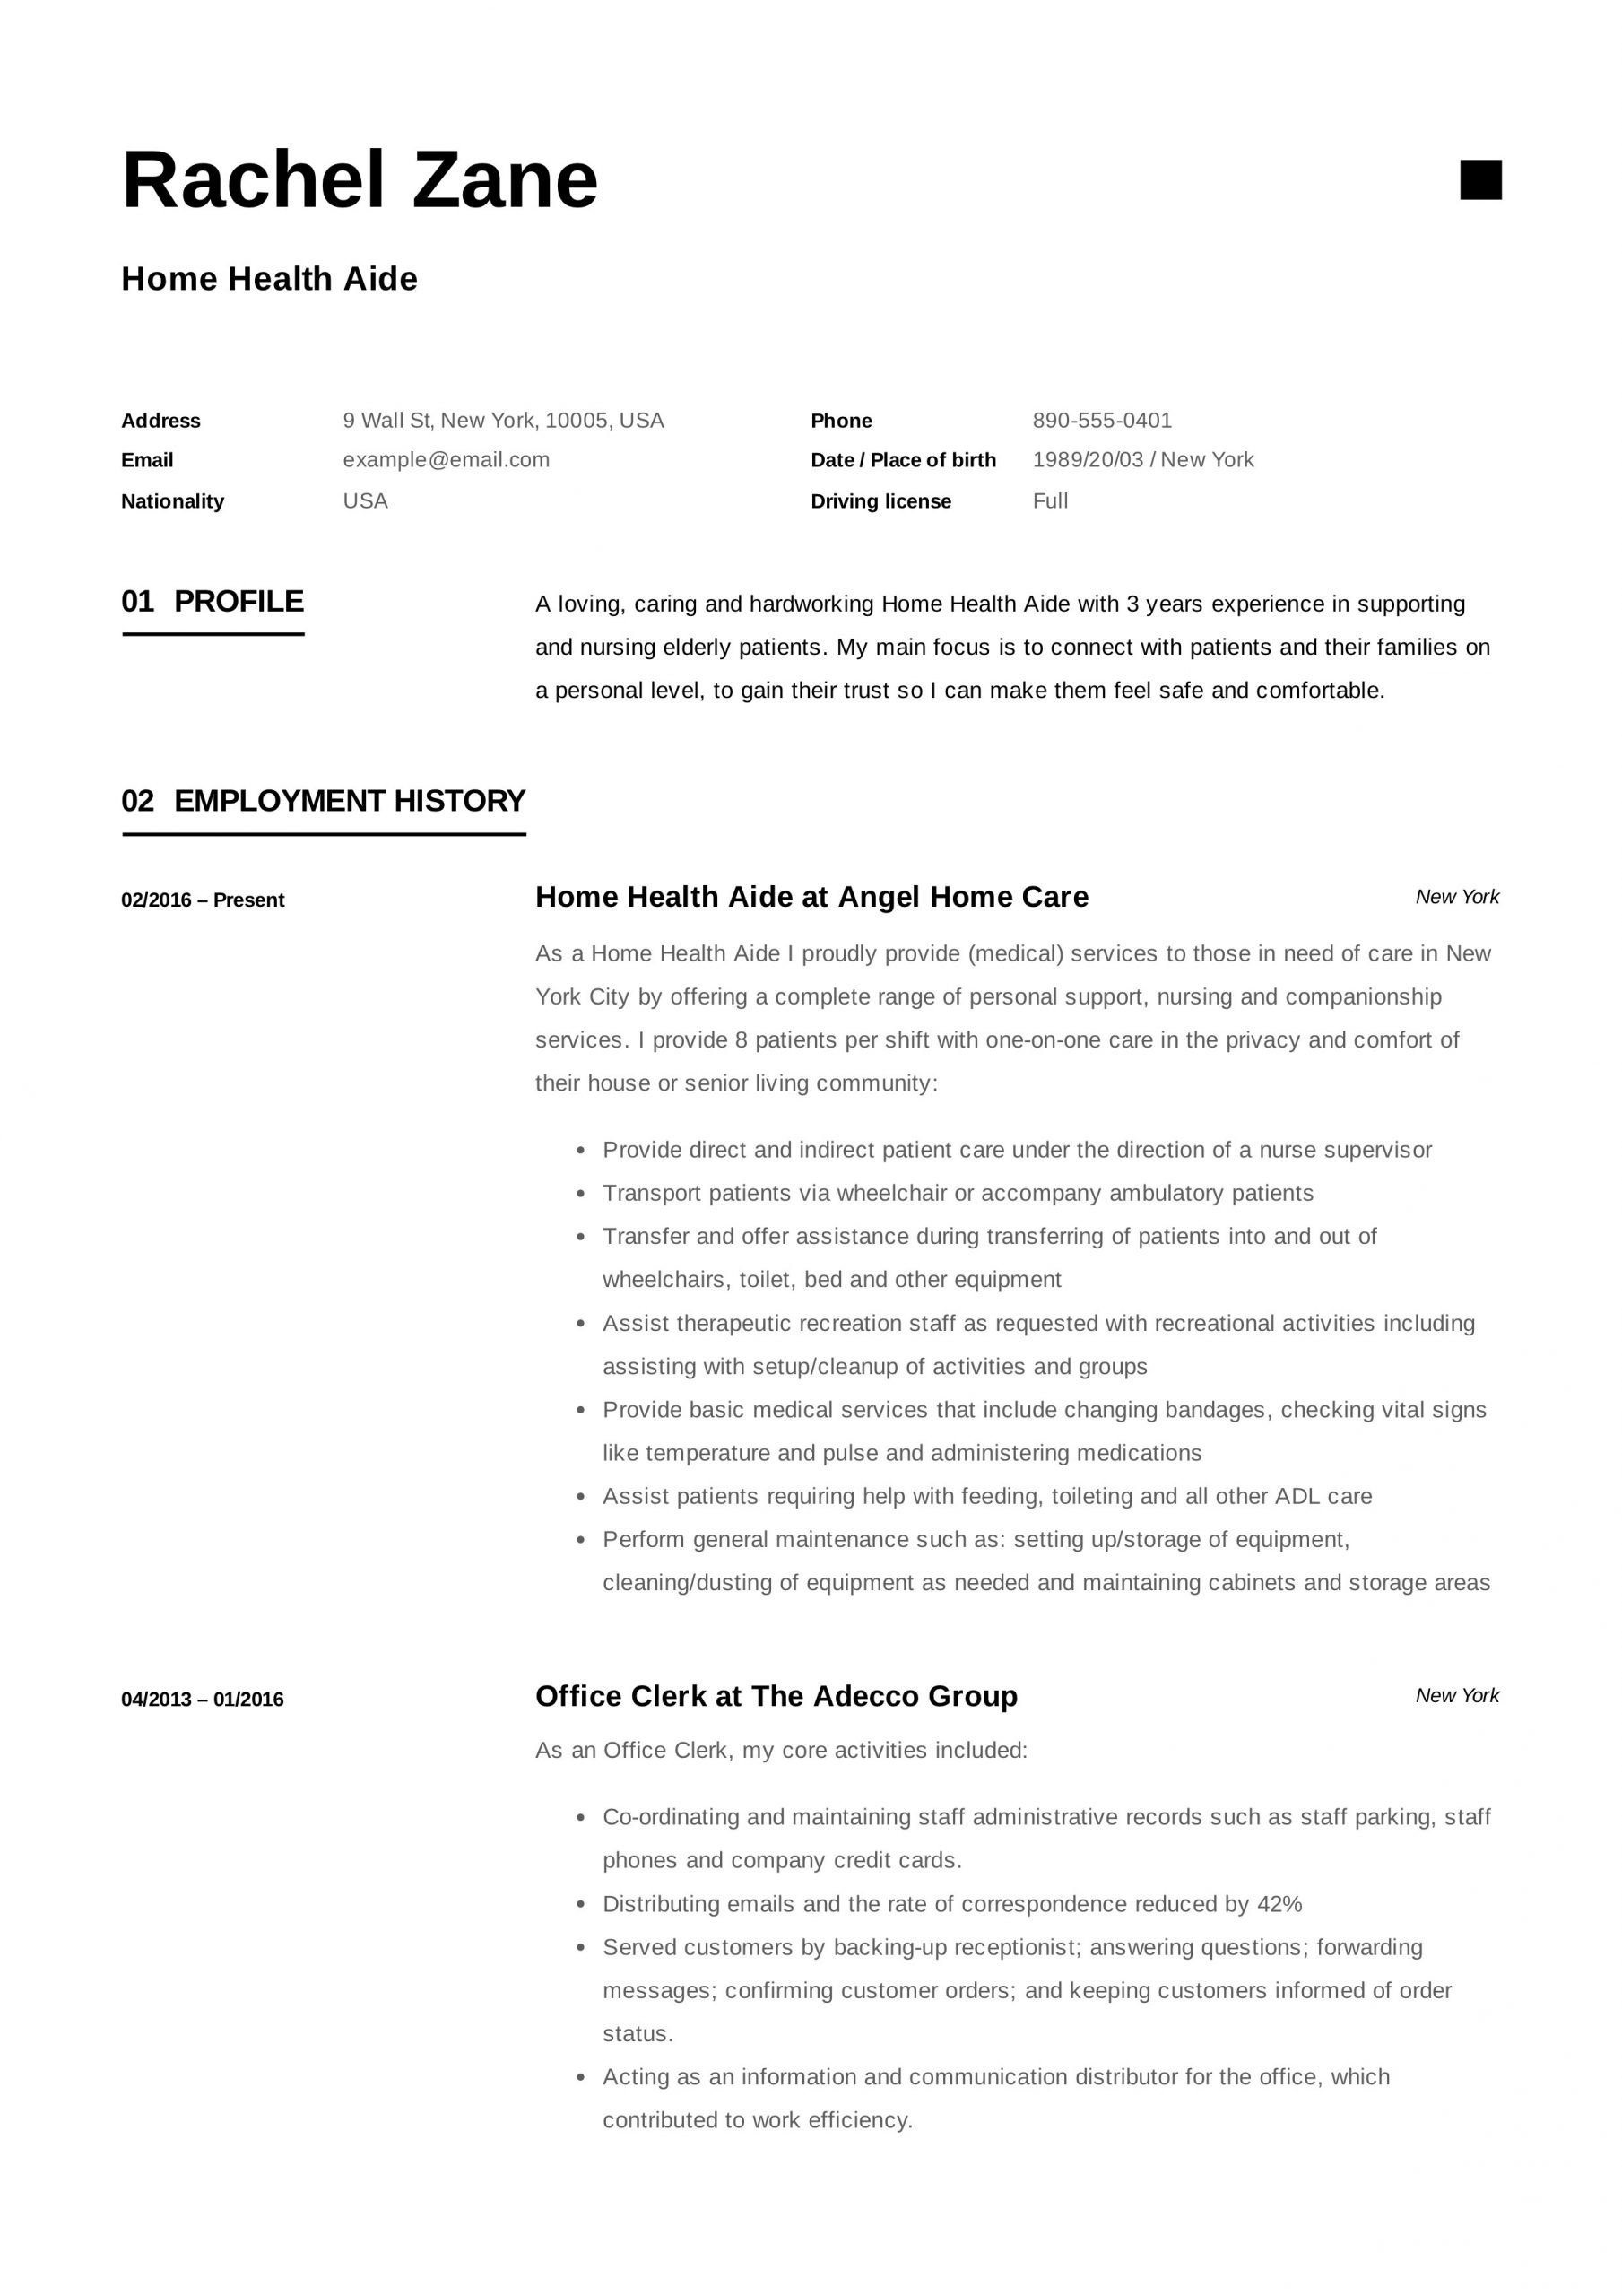 home health aide resume example free builder examples sample amp writing guide of scaled Resume Home Health Aide Resume Examples